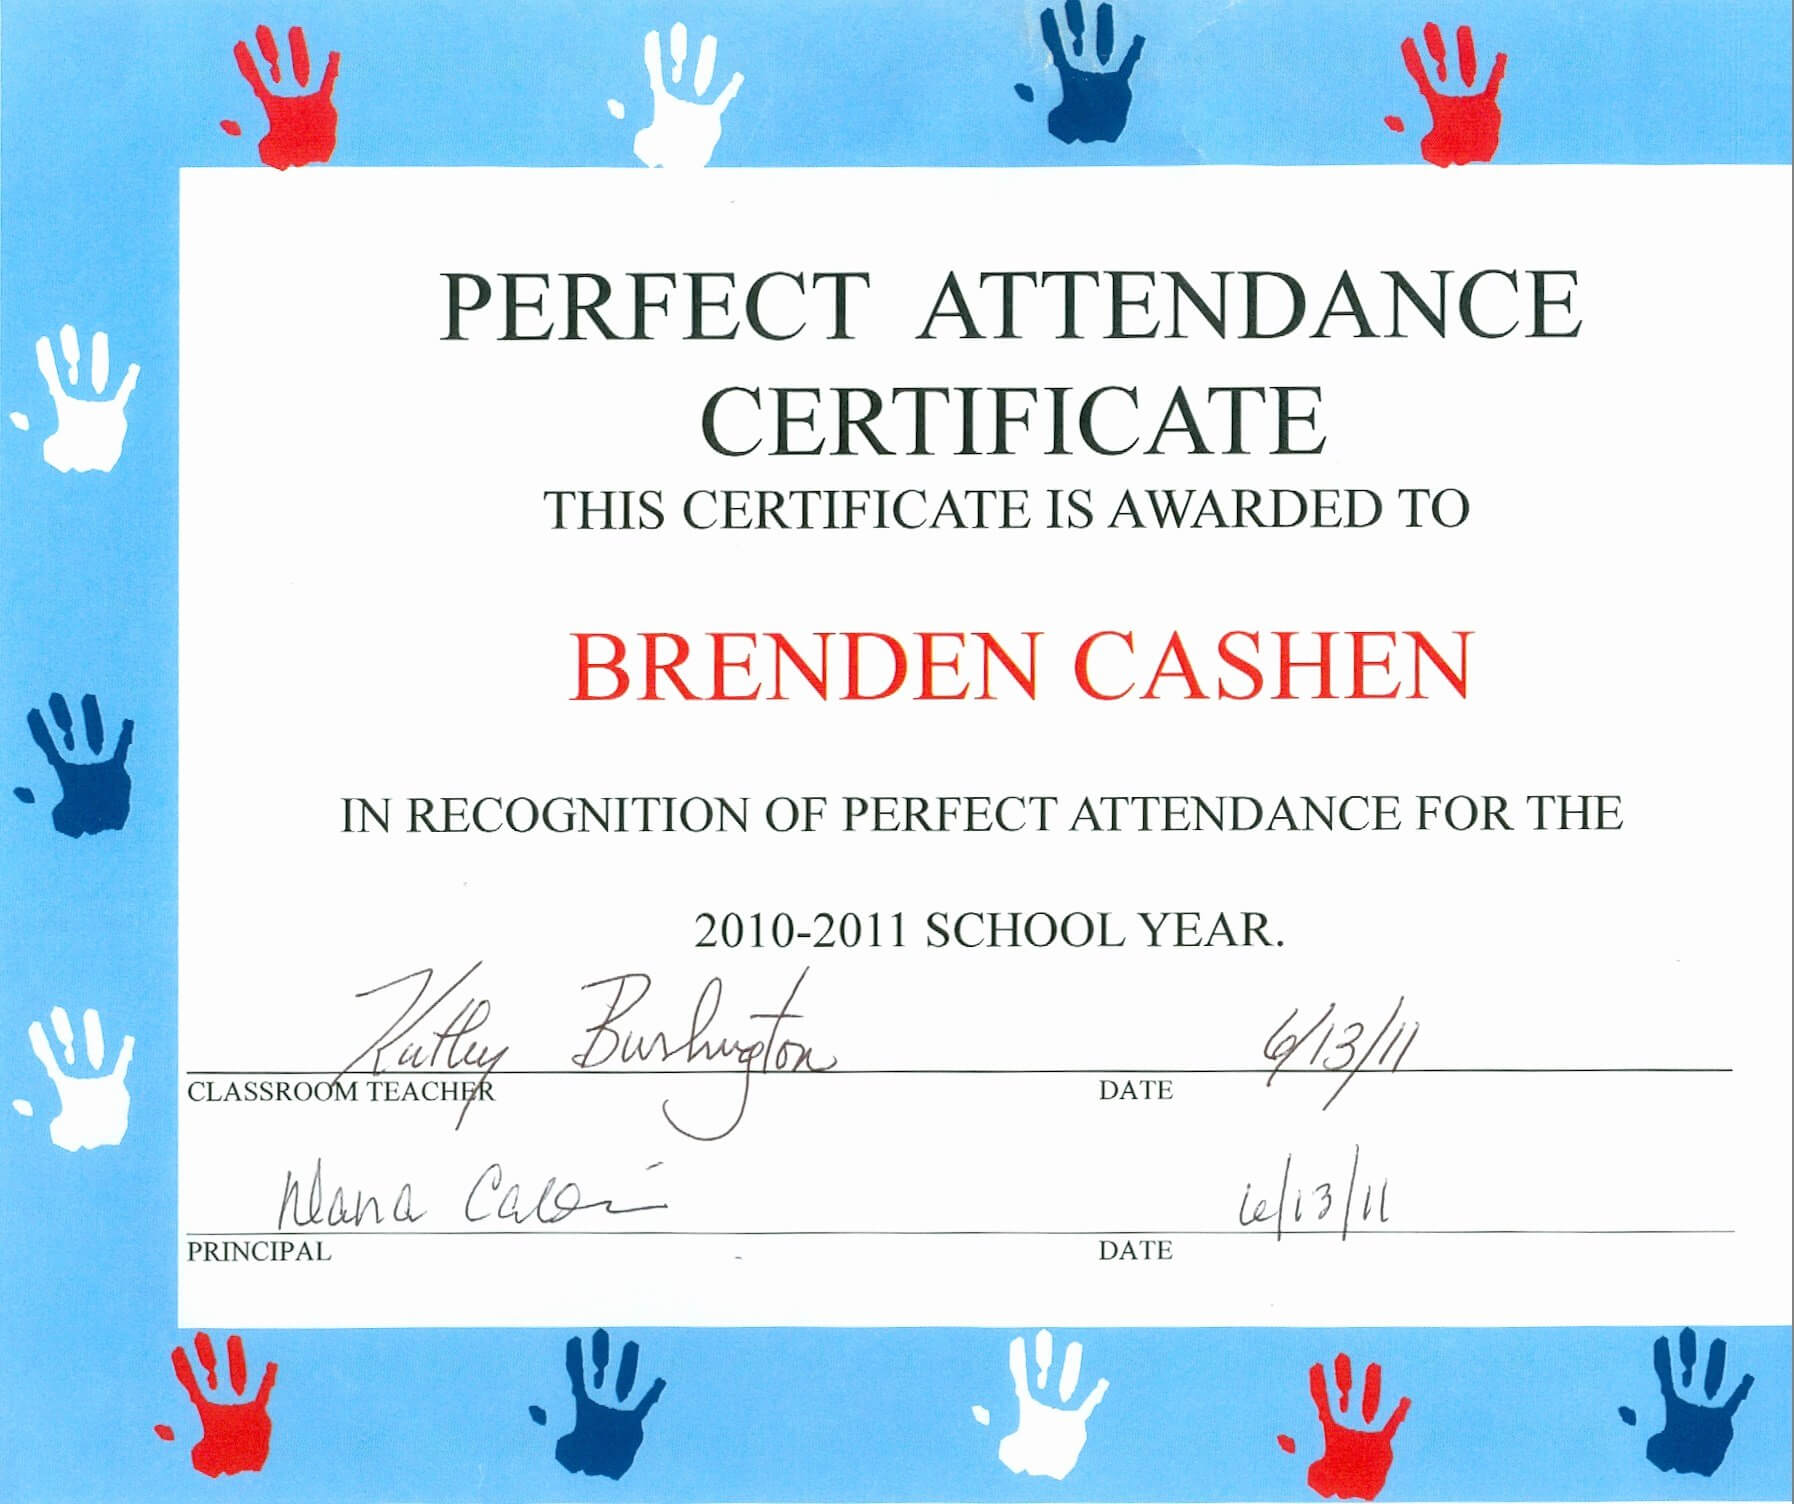 30 Free Perfect Attendance Certificate | Pryncepality inside Perfect Attendance Certificate Template